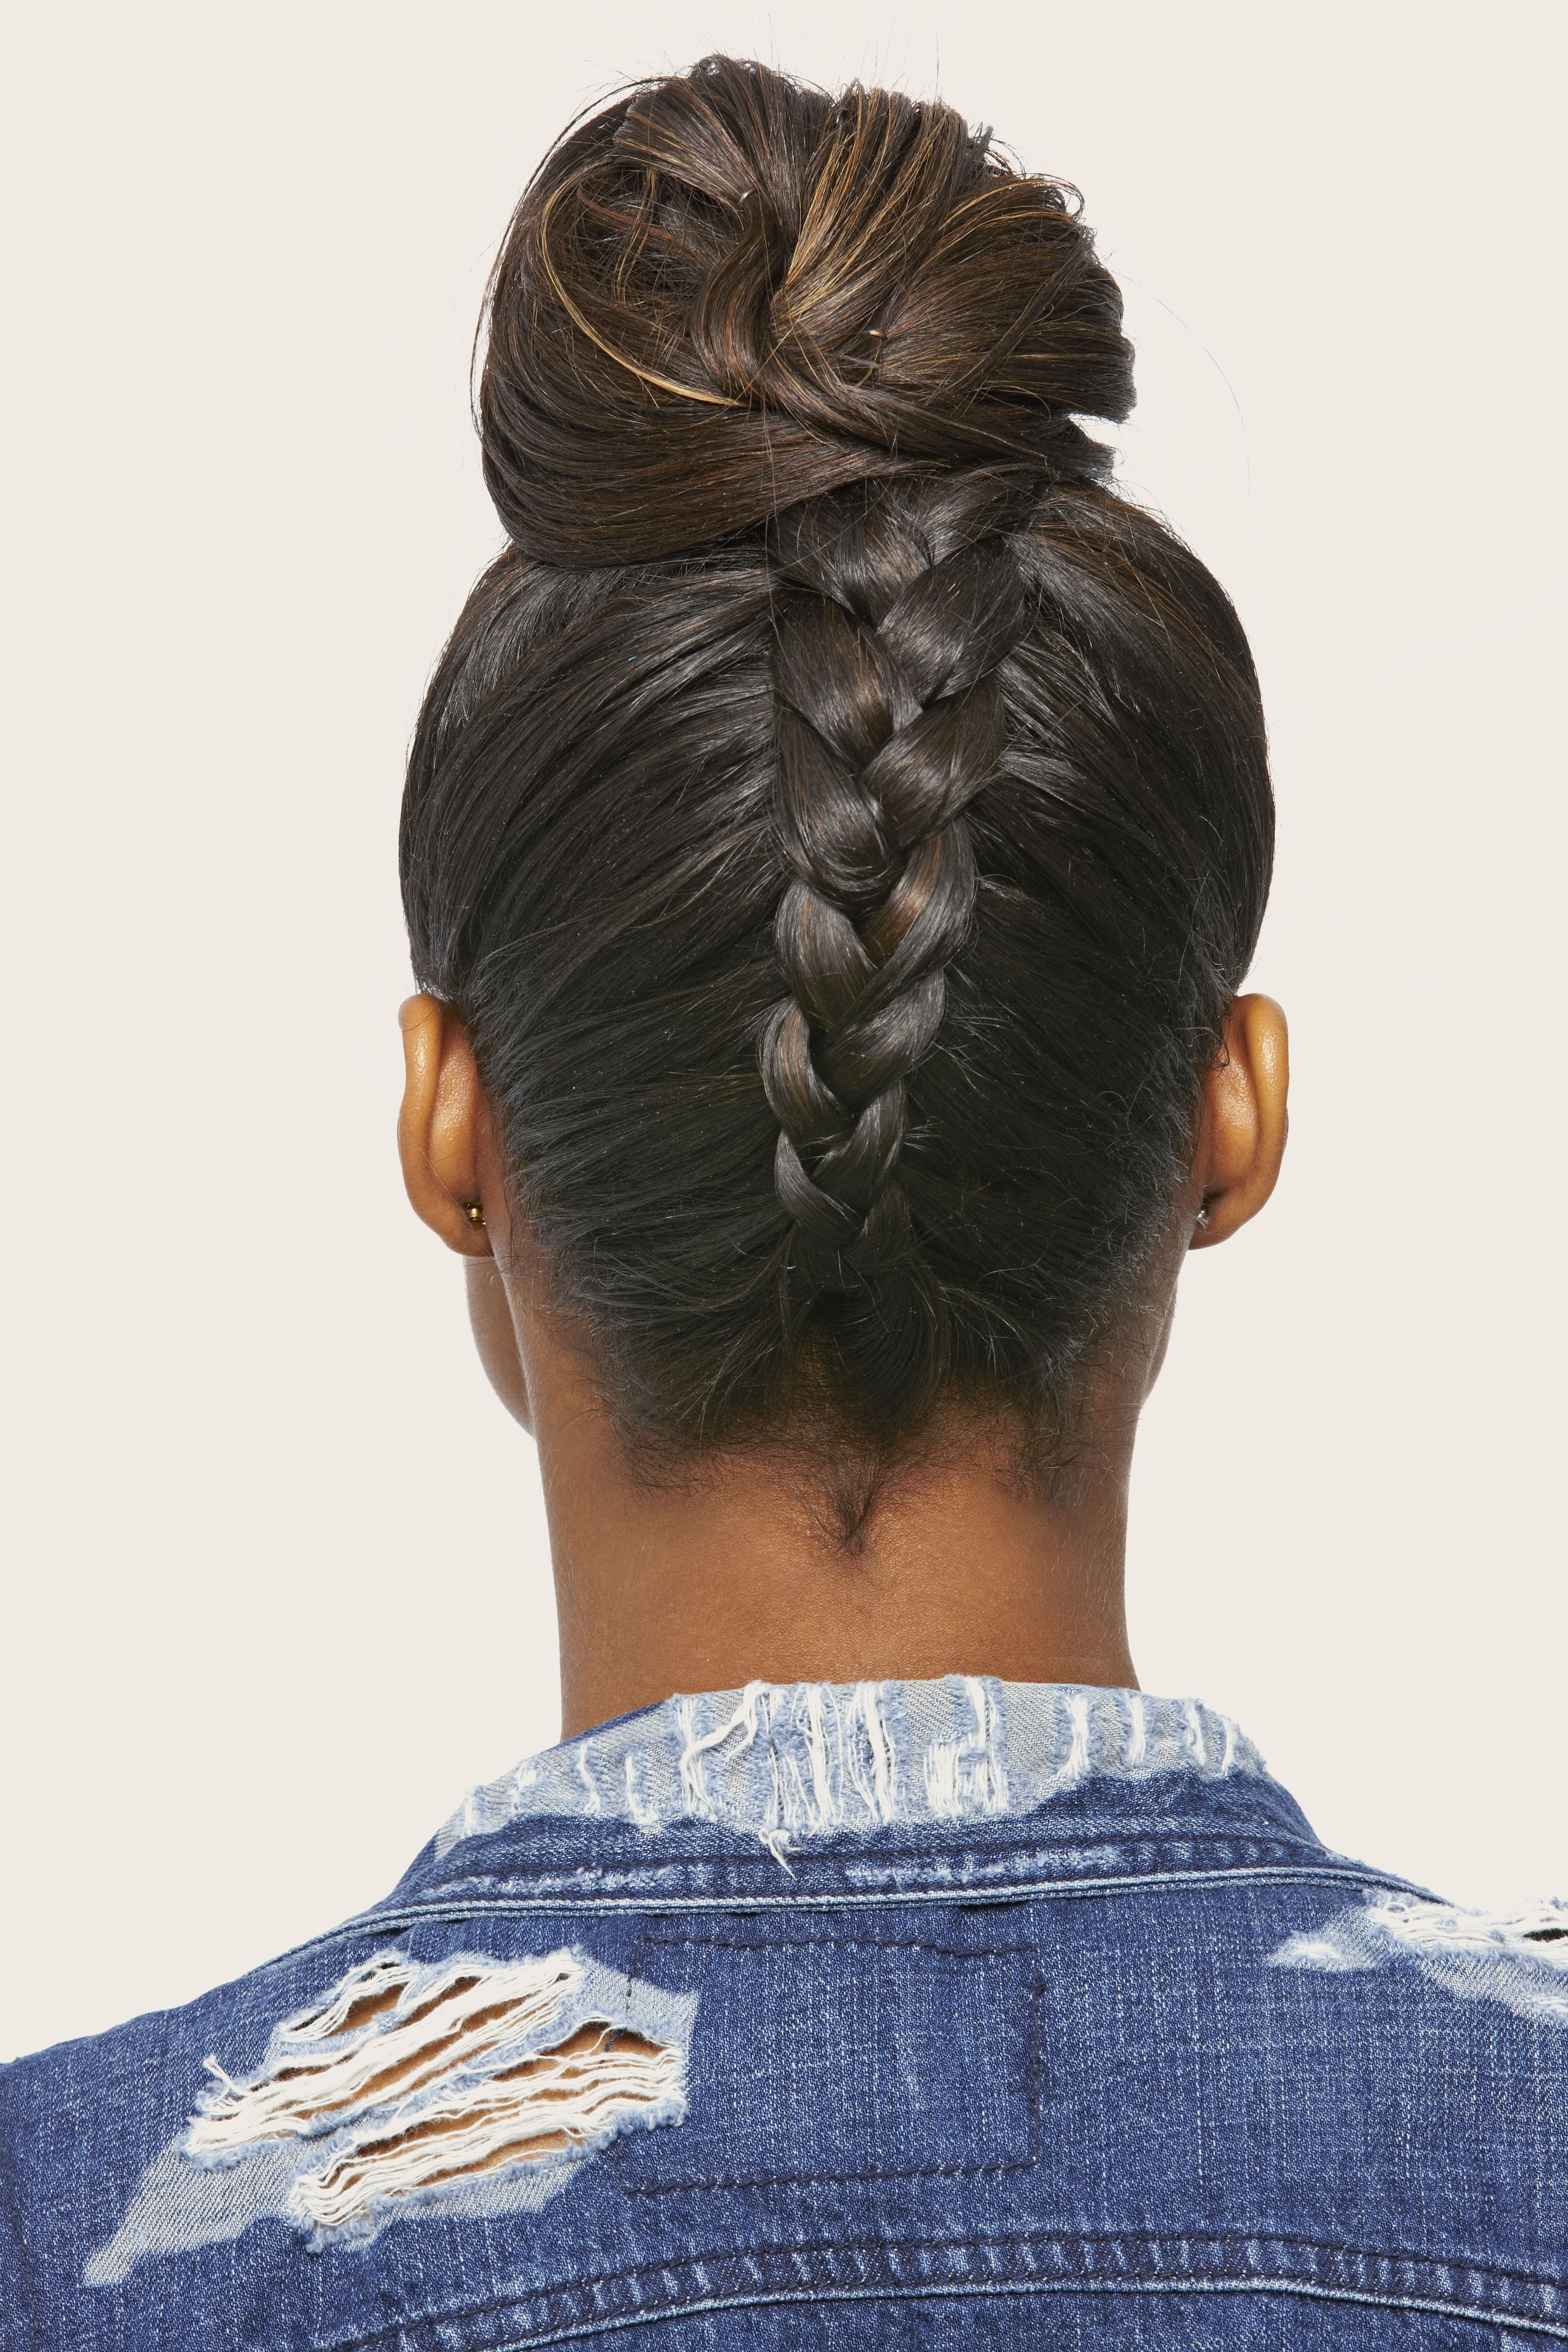 19 Ways To Up Your Braid Game Braided Hairstyles Easy Braids For Long Hair Hair Flip